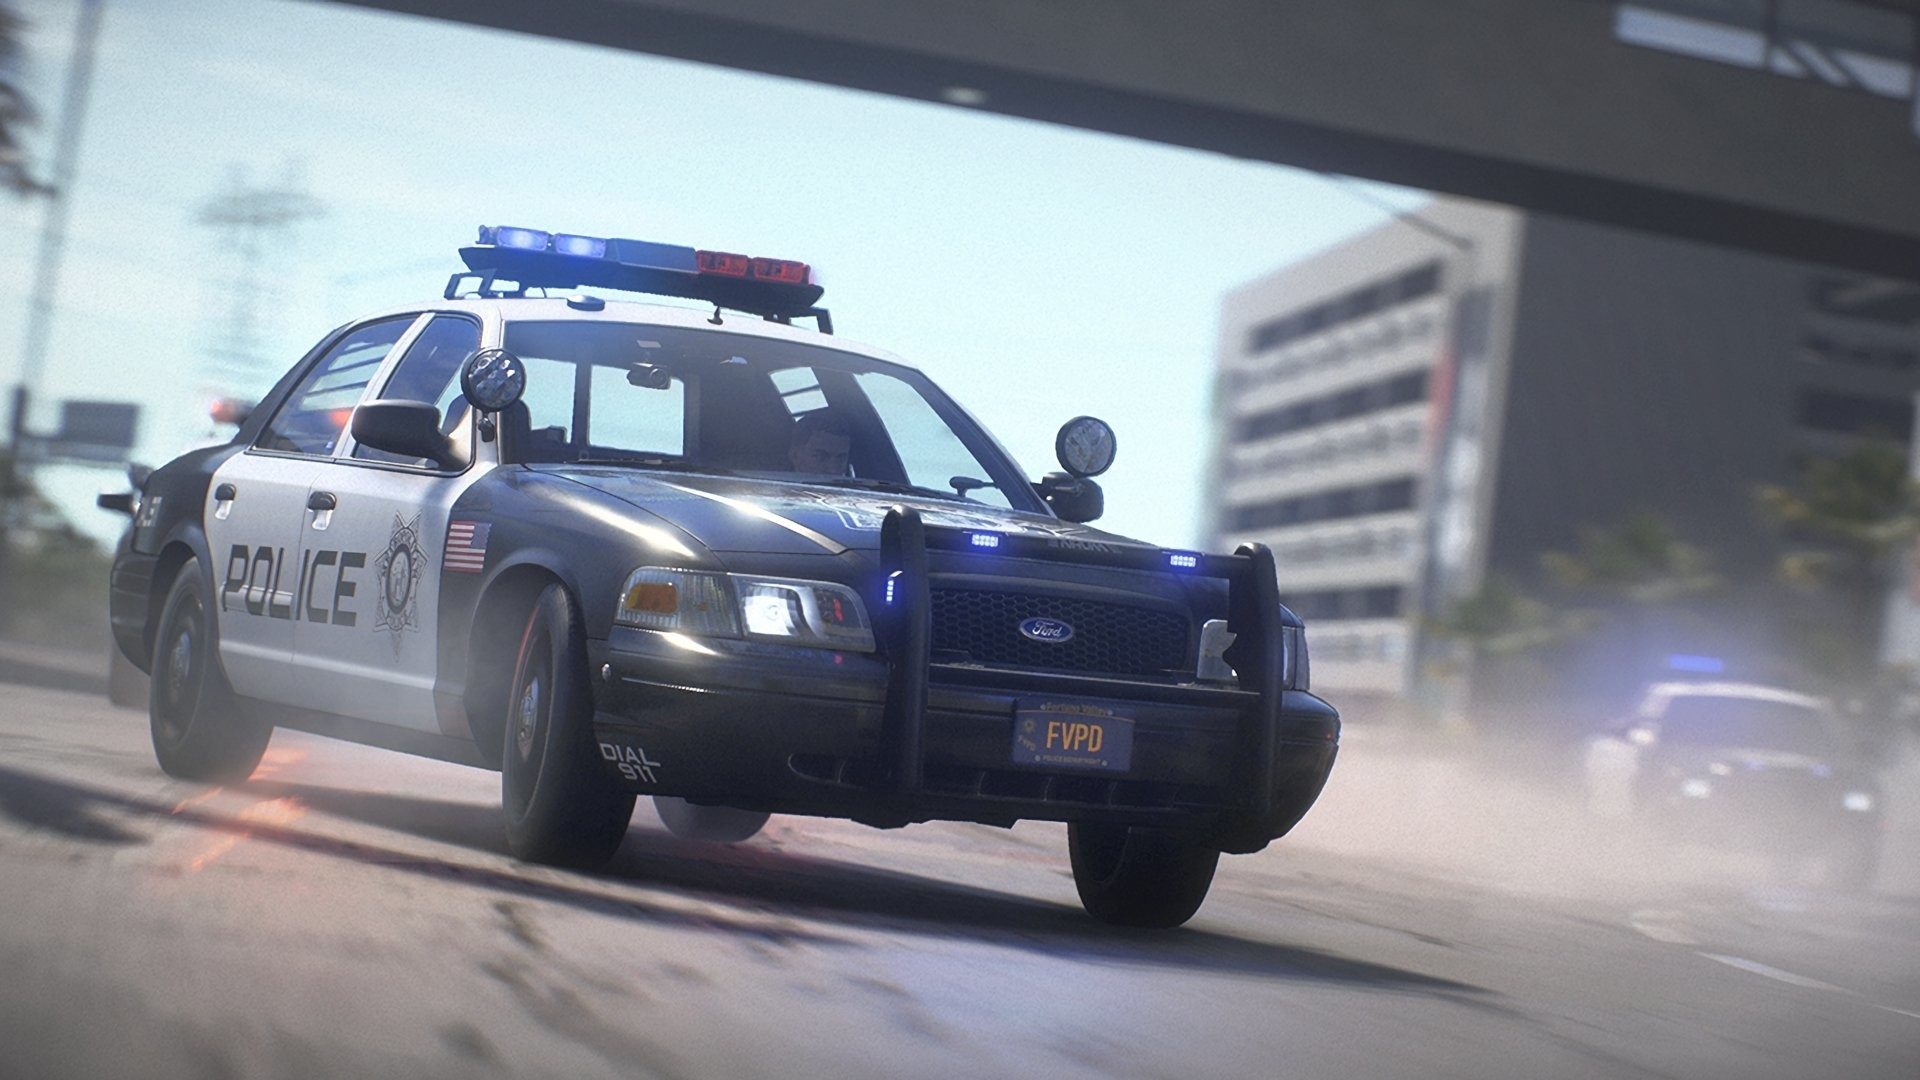 Res: 1920x1080, Video Game - Need for Speed Payback Need For Speed Ford Car Police Car  Wallpaper